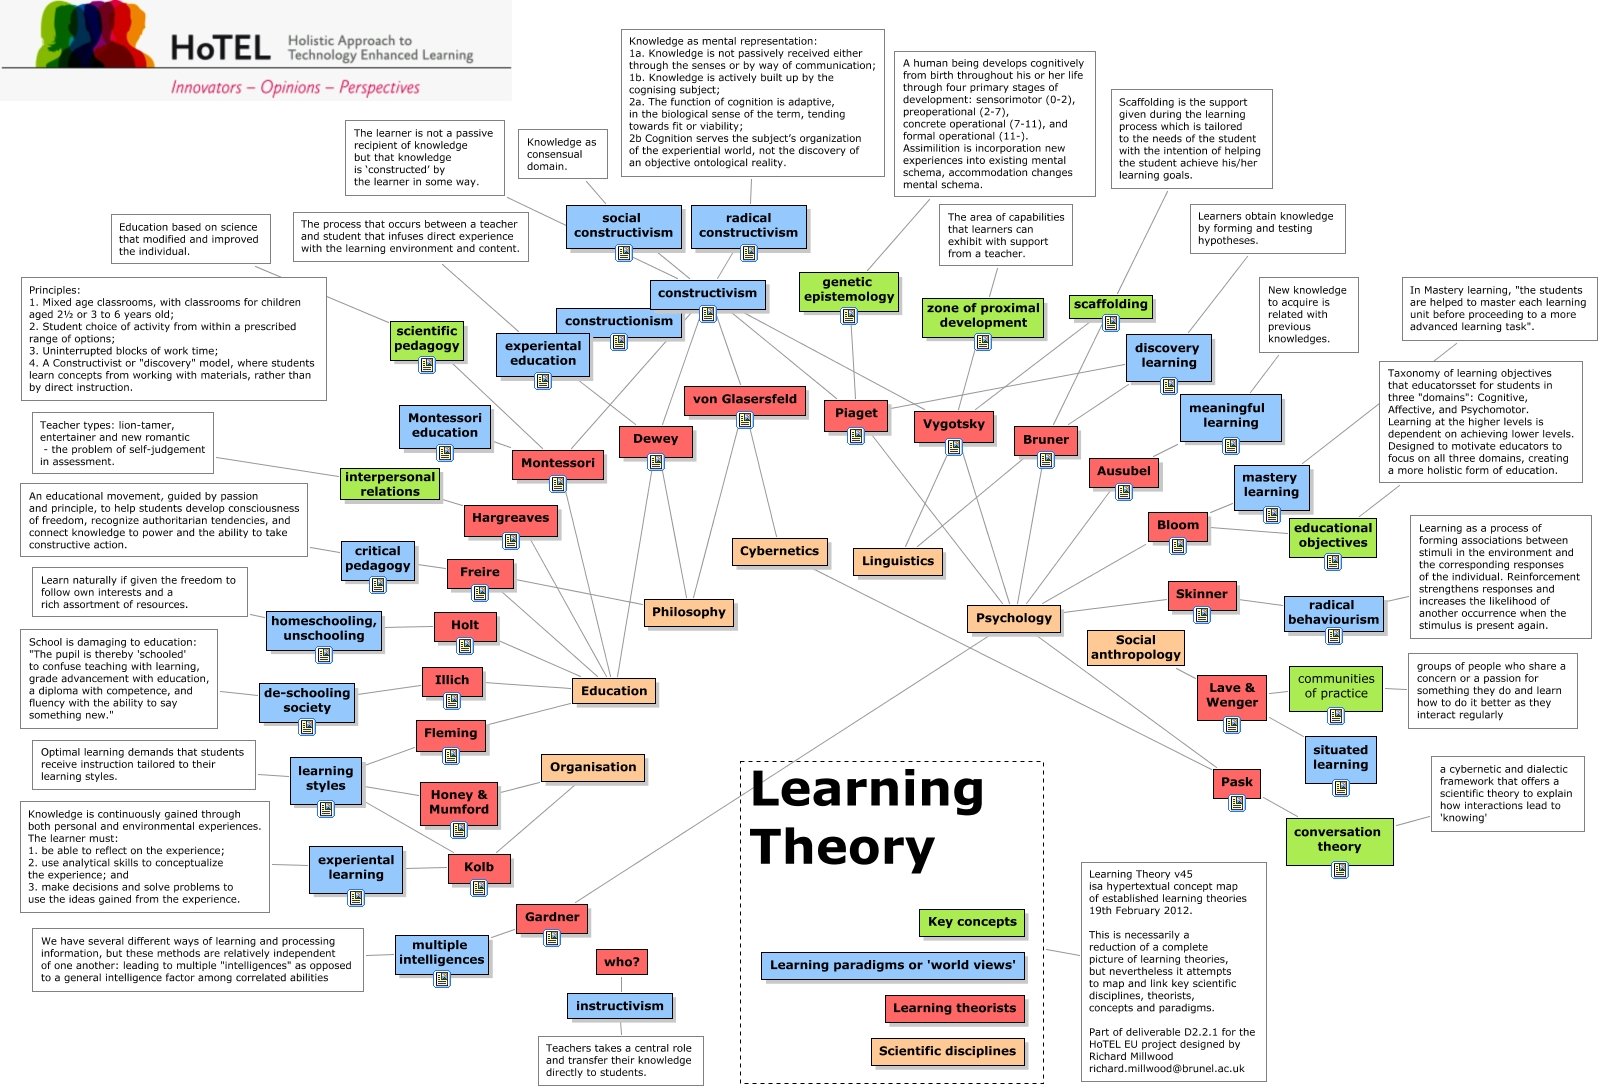 Learning Theory v5.cmap